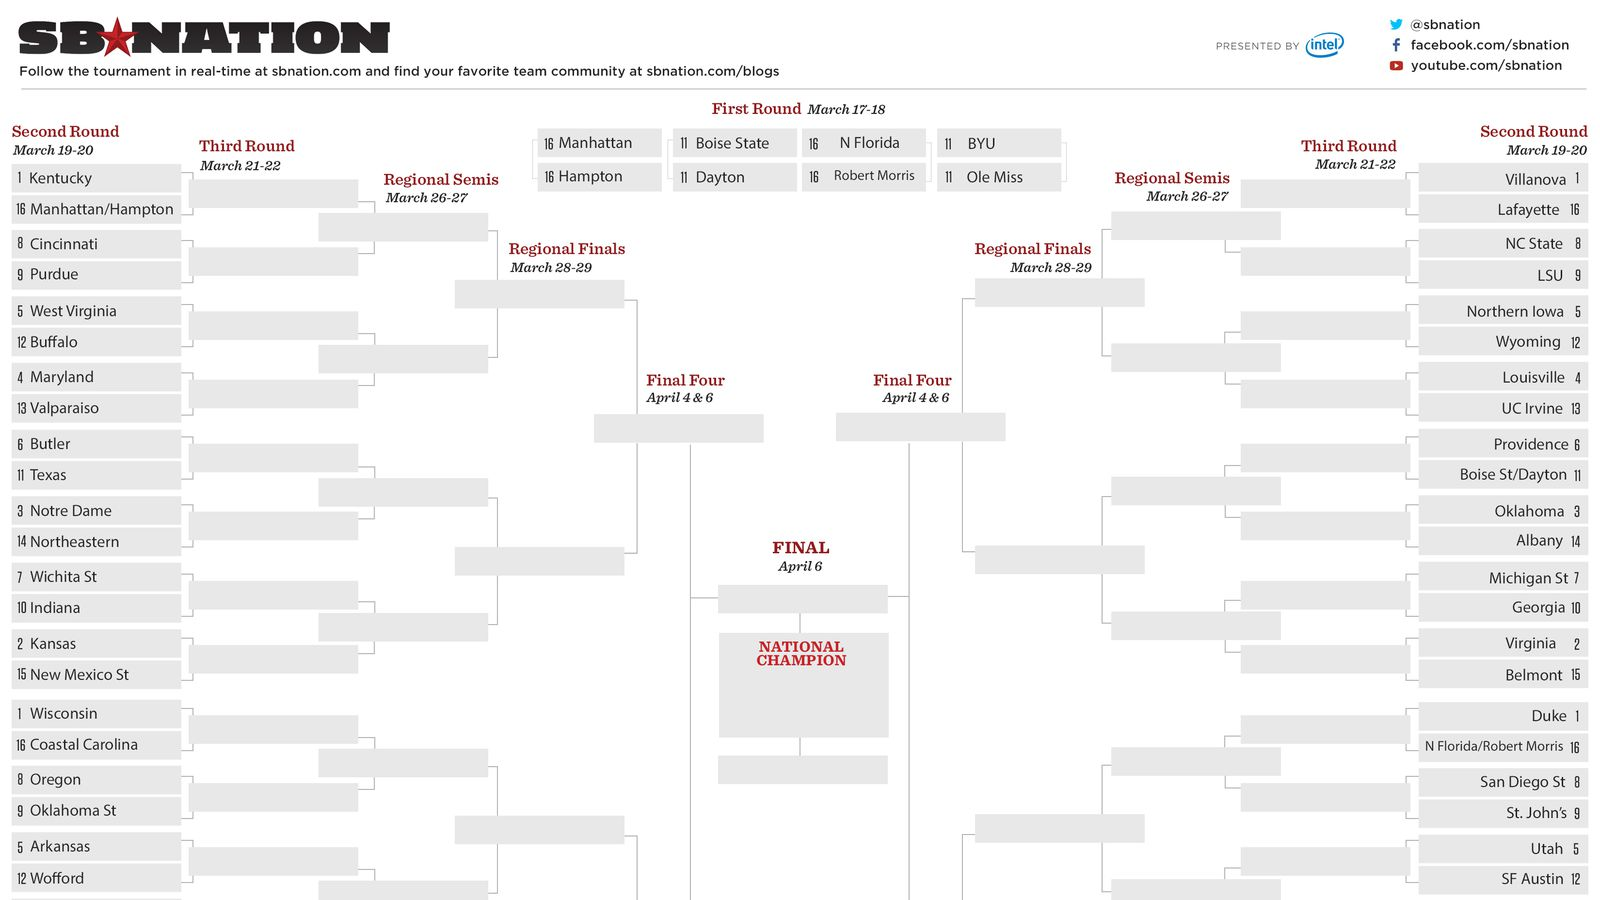 Printable NCAA bracket 2015: The field is set, now make